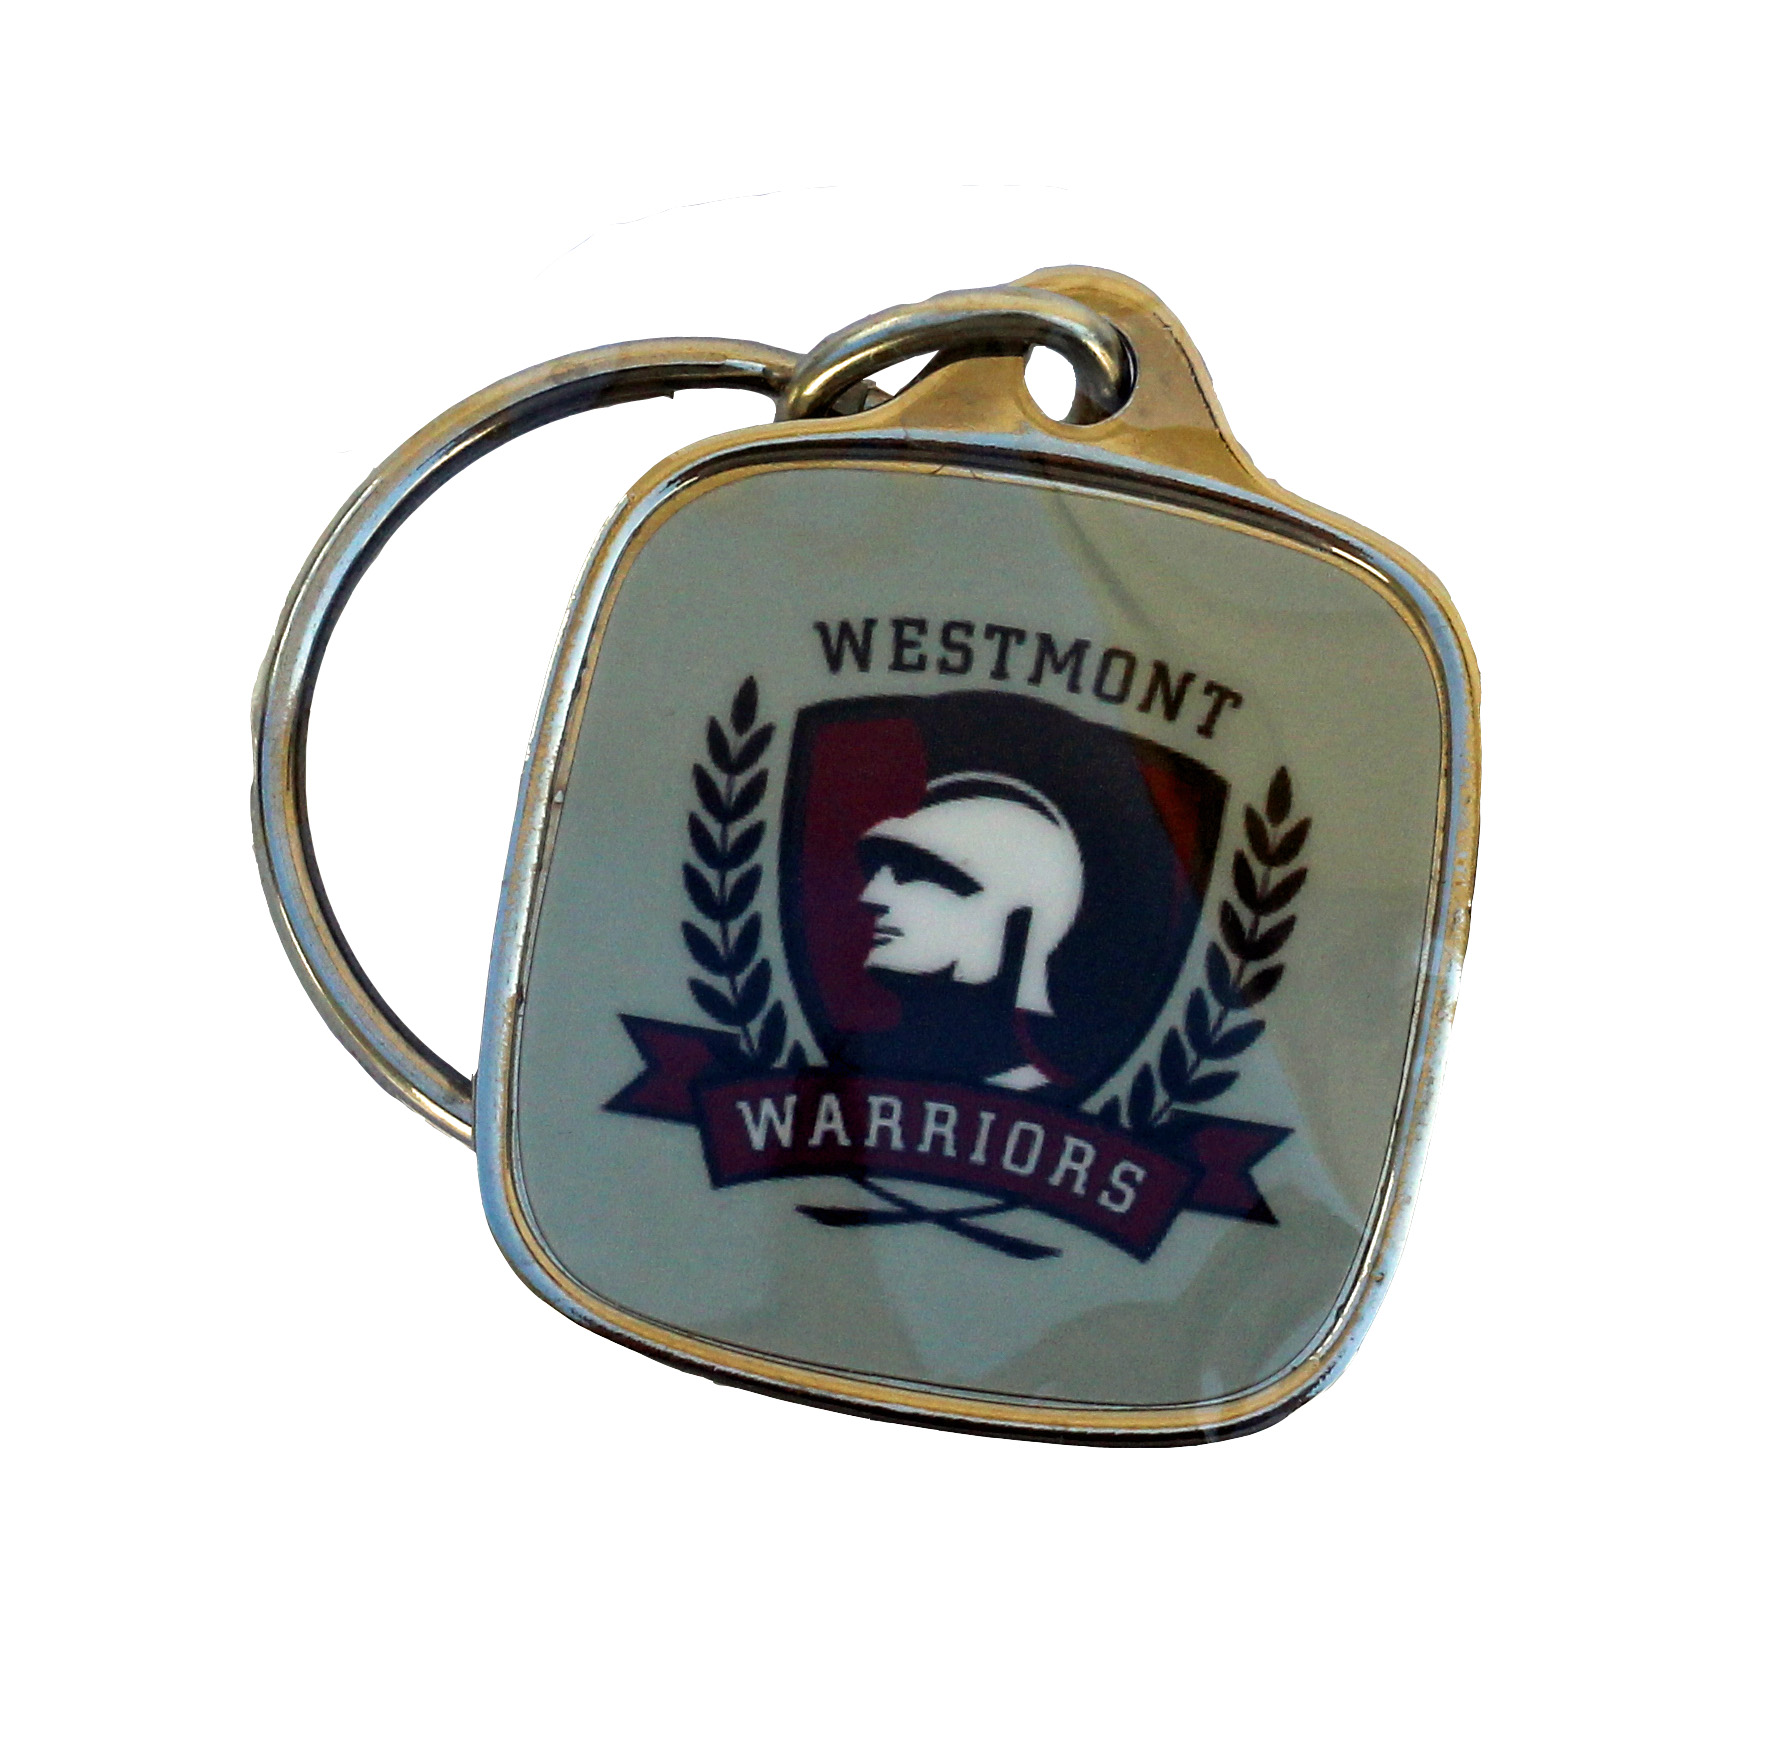 Image for the Warrior Square Key Ring  product